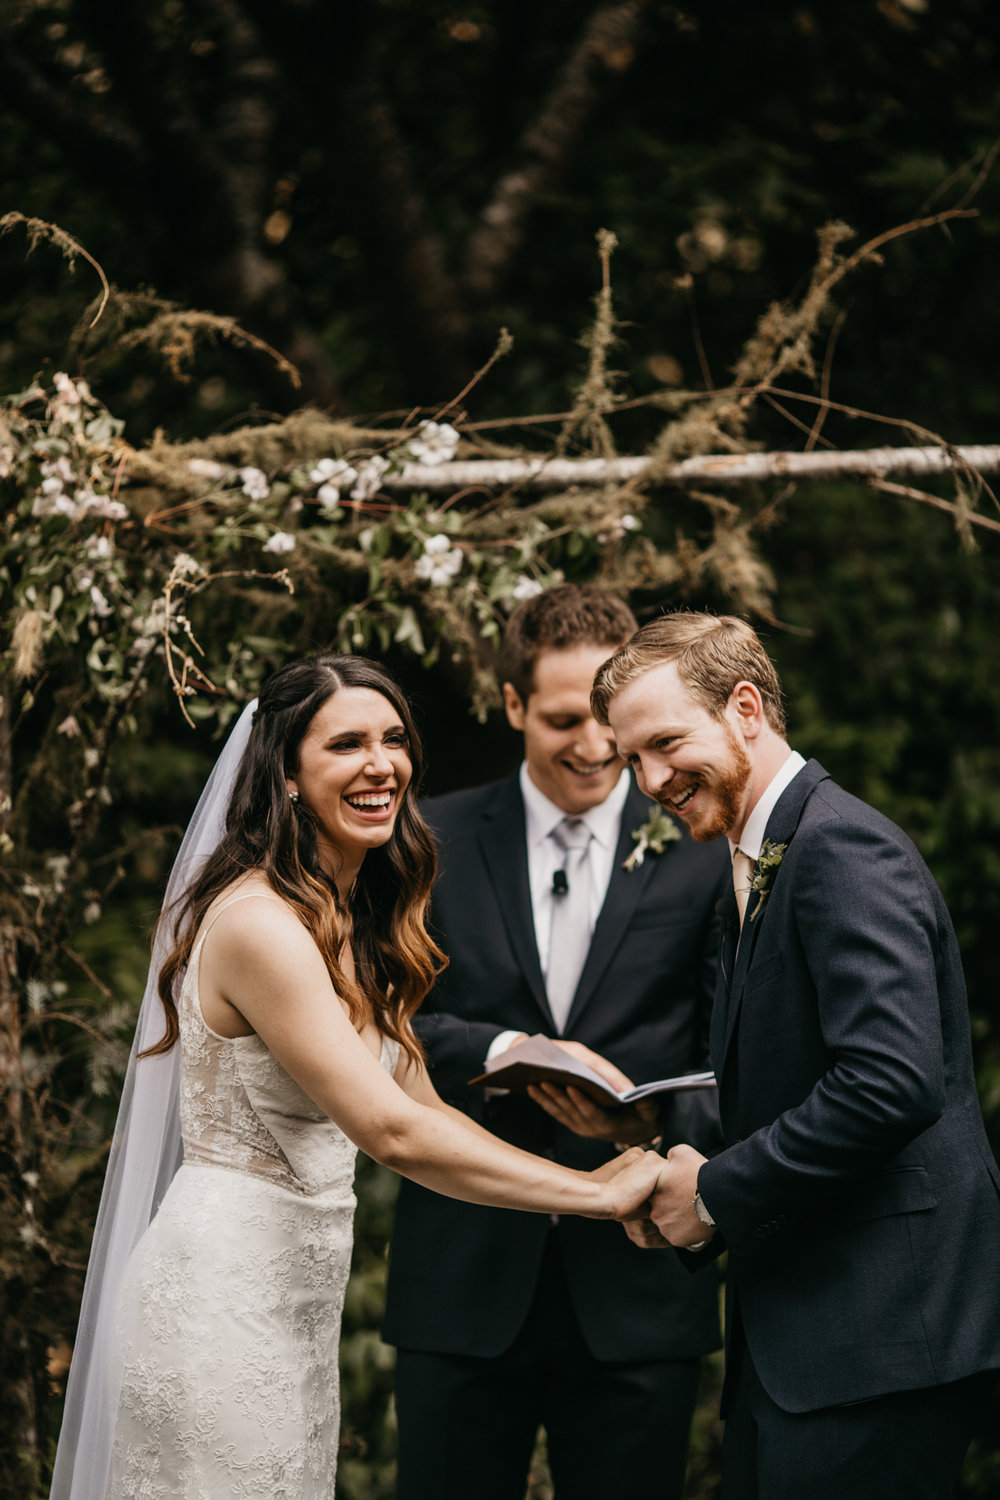 Max&SamPhoto_Seattle Wedding Photographer_Bellevue Robinswood House_086.jpg